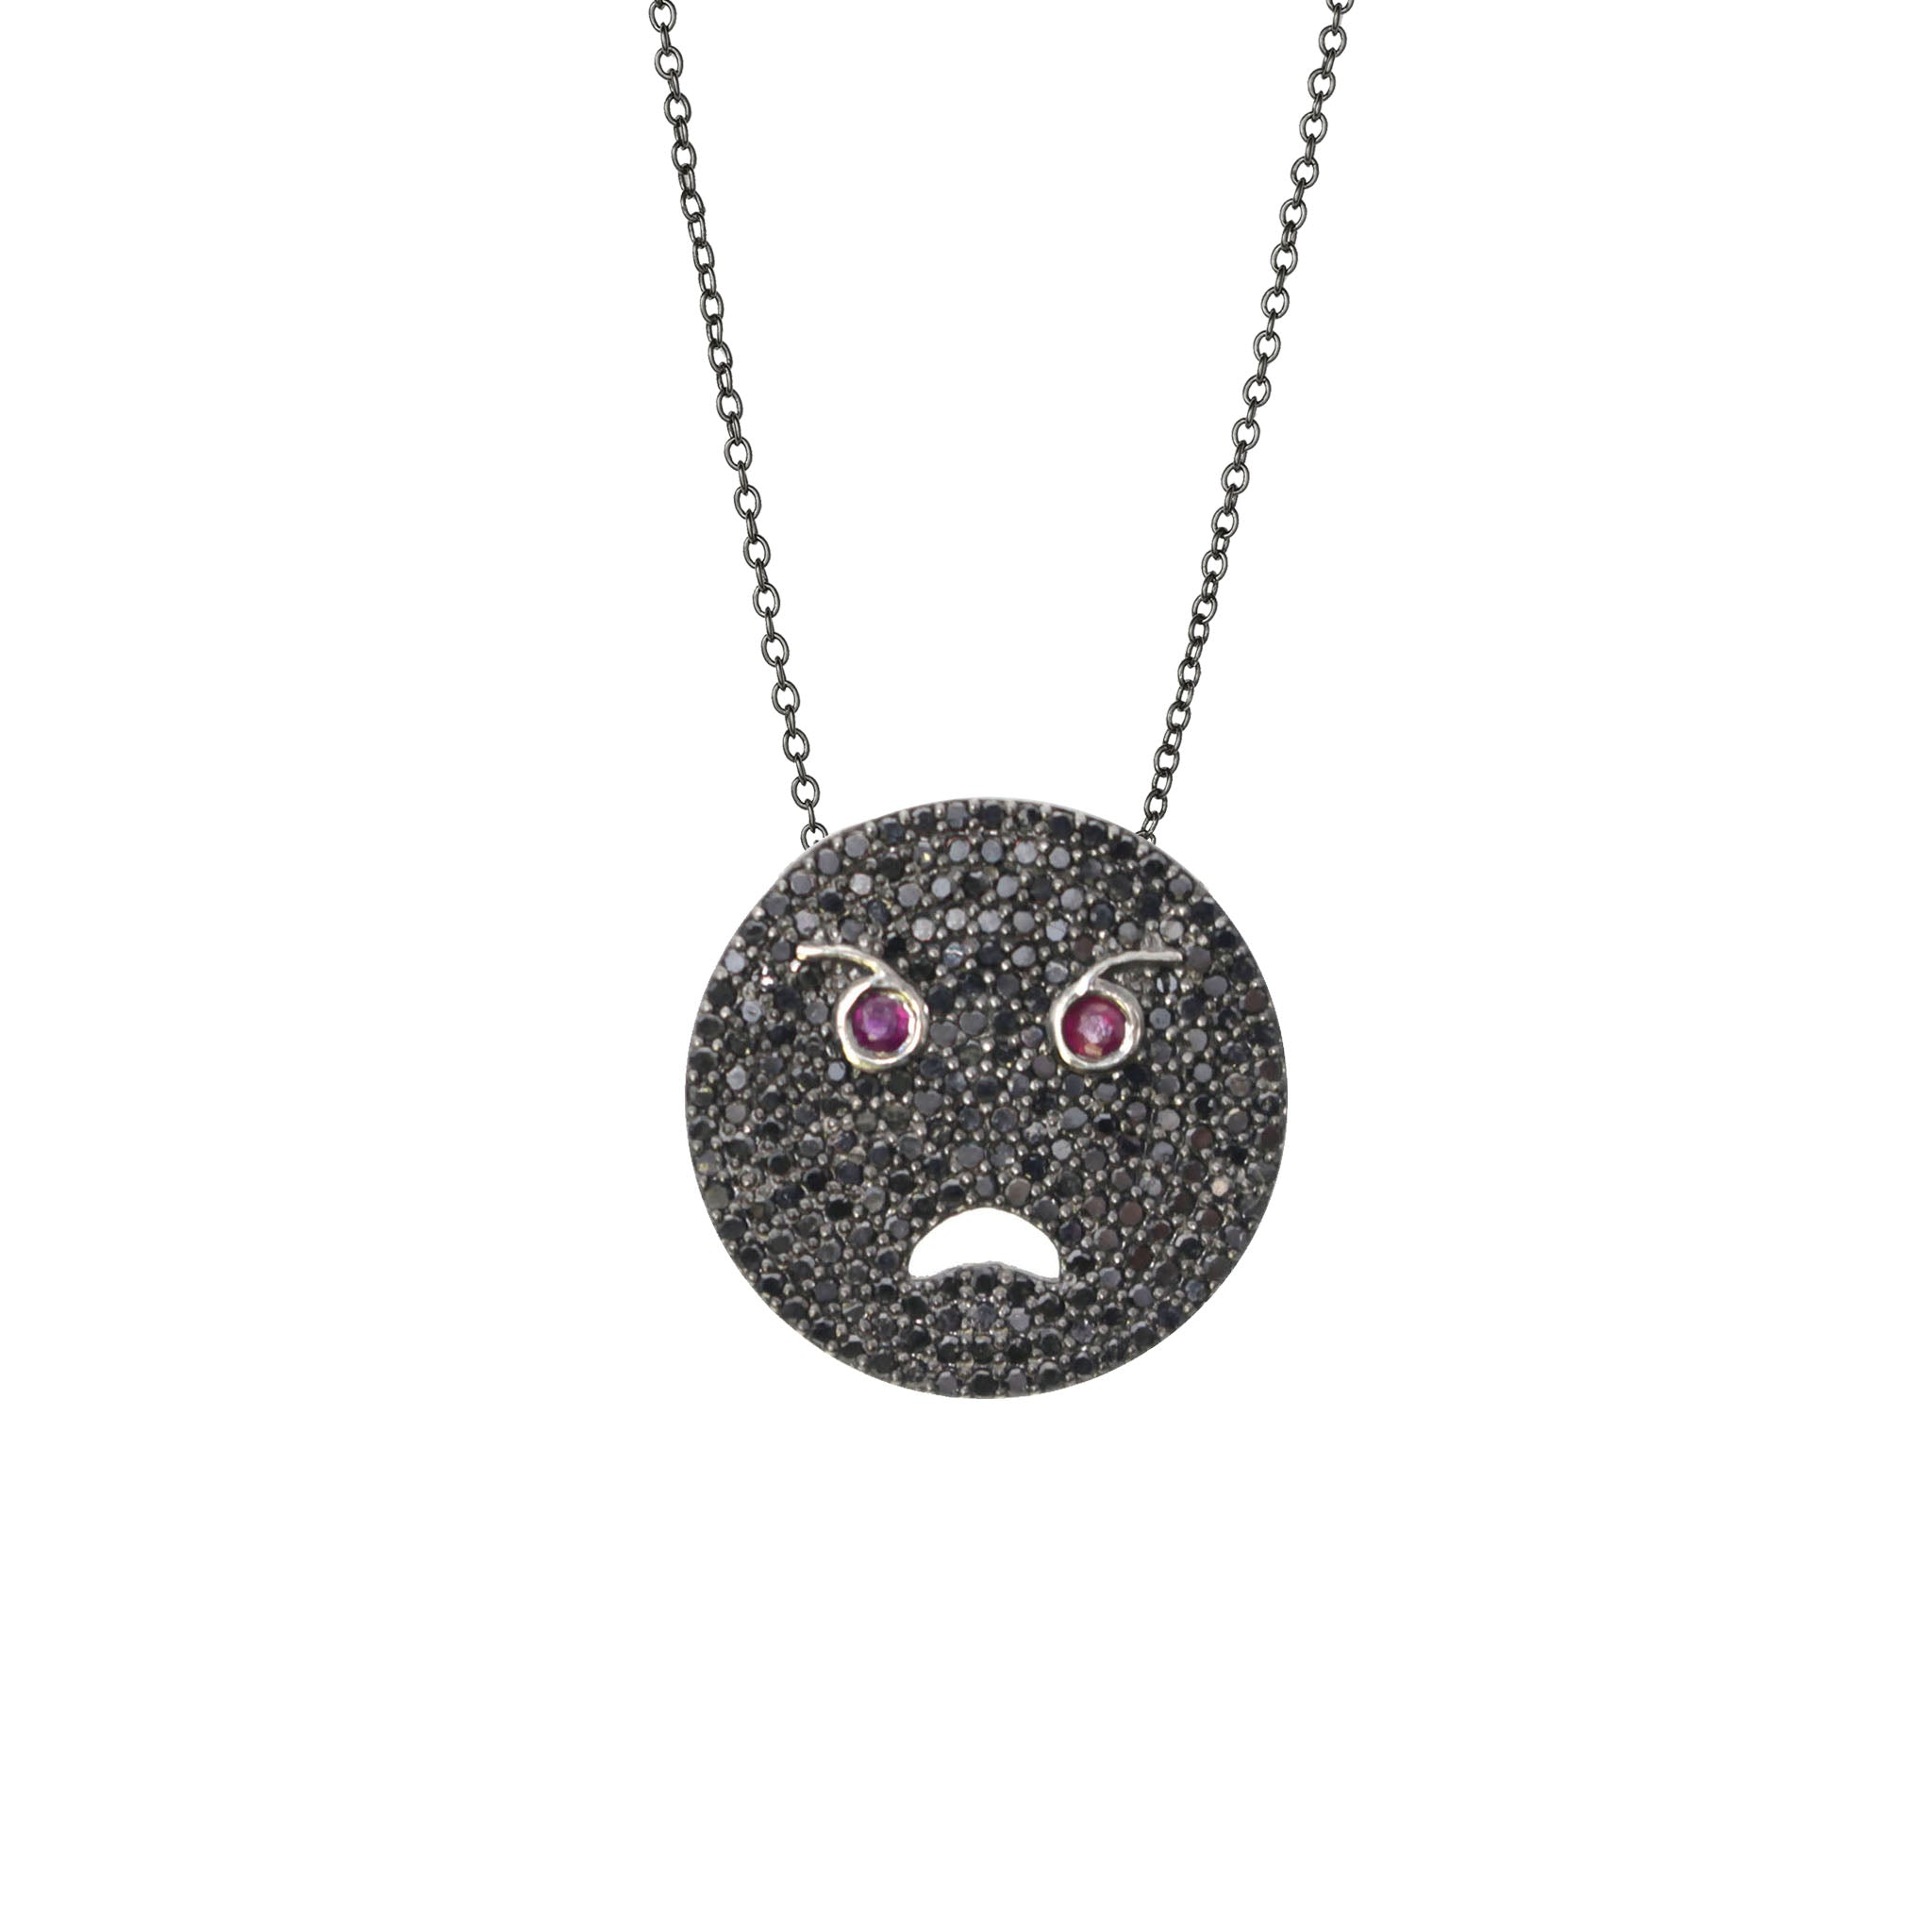 t white meira necklace jewelry gold black pendant diamond gallery lyst moon product in